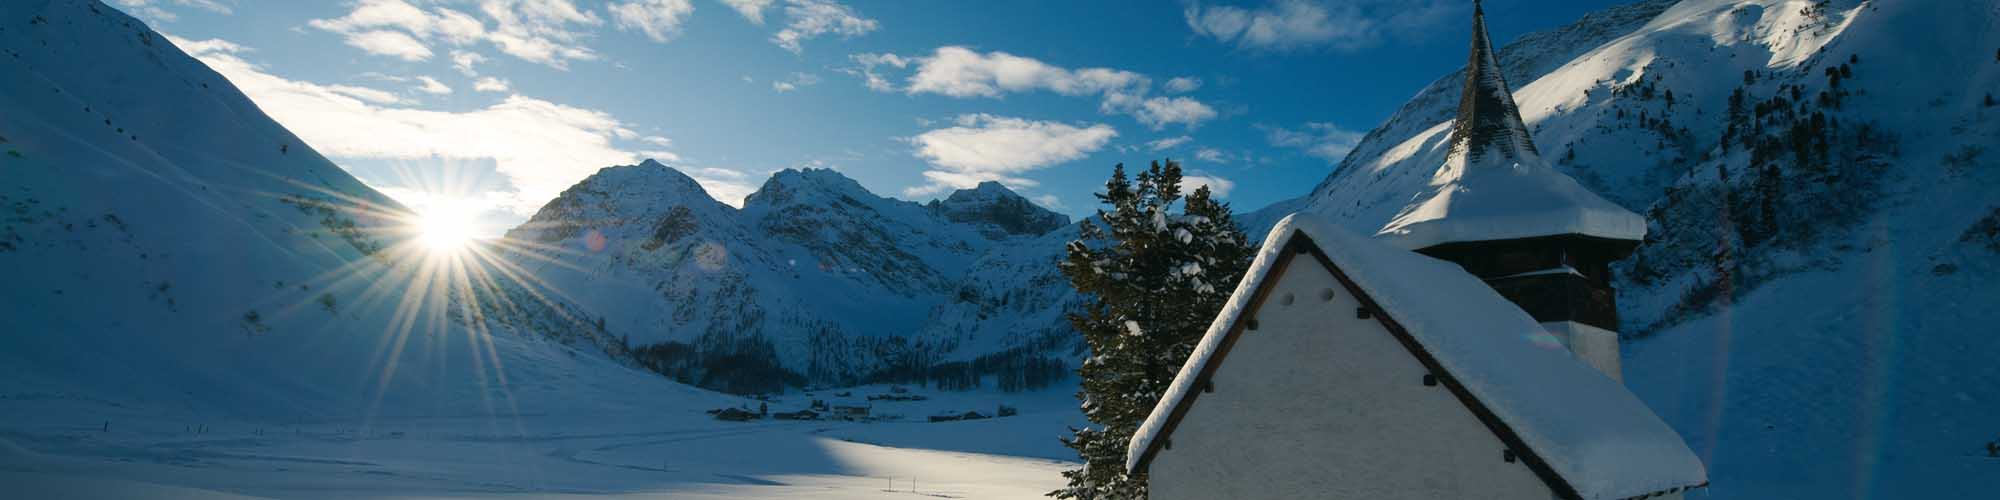 Hotel Davos - A 105 km network - of runs